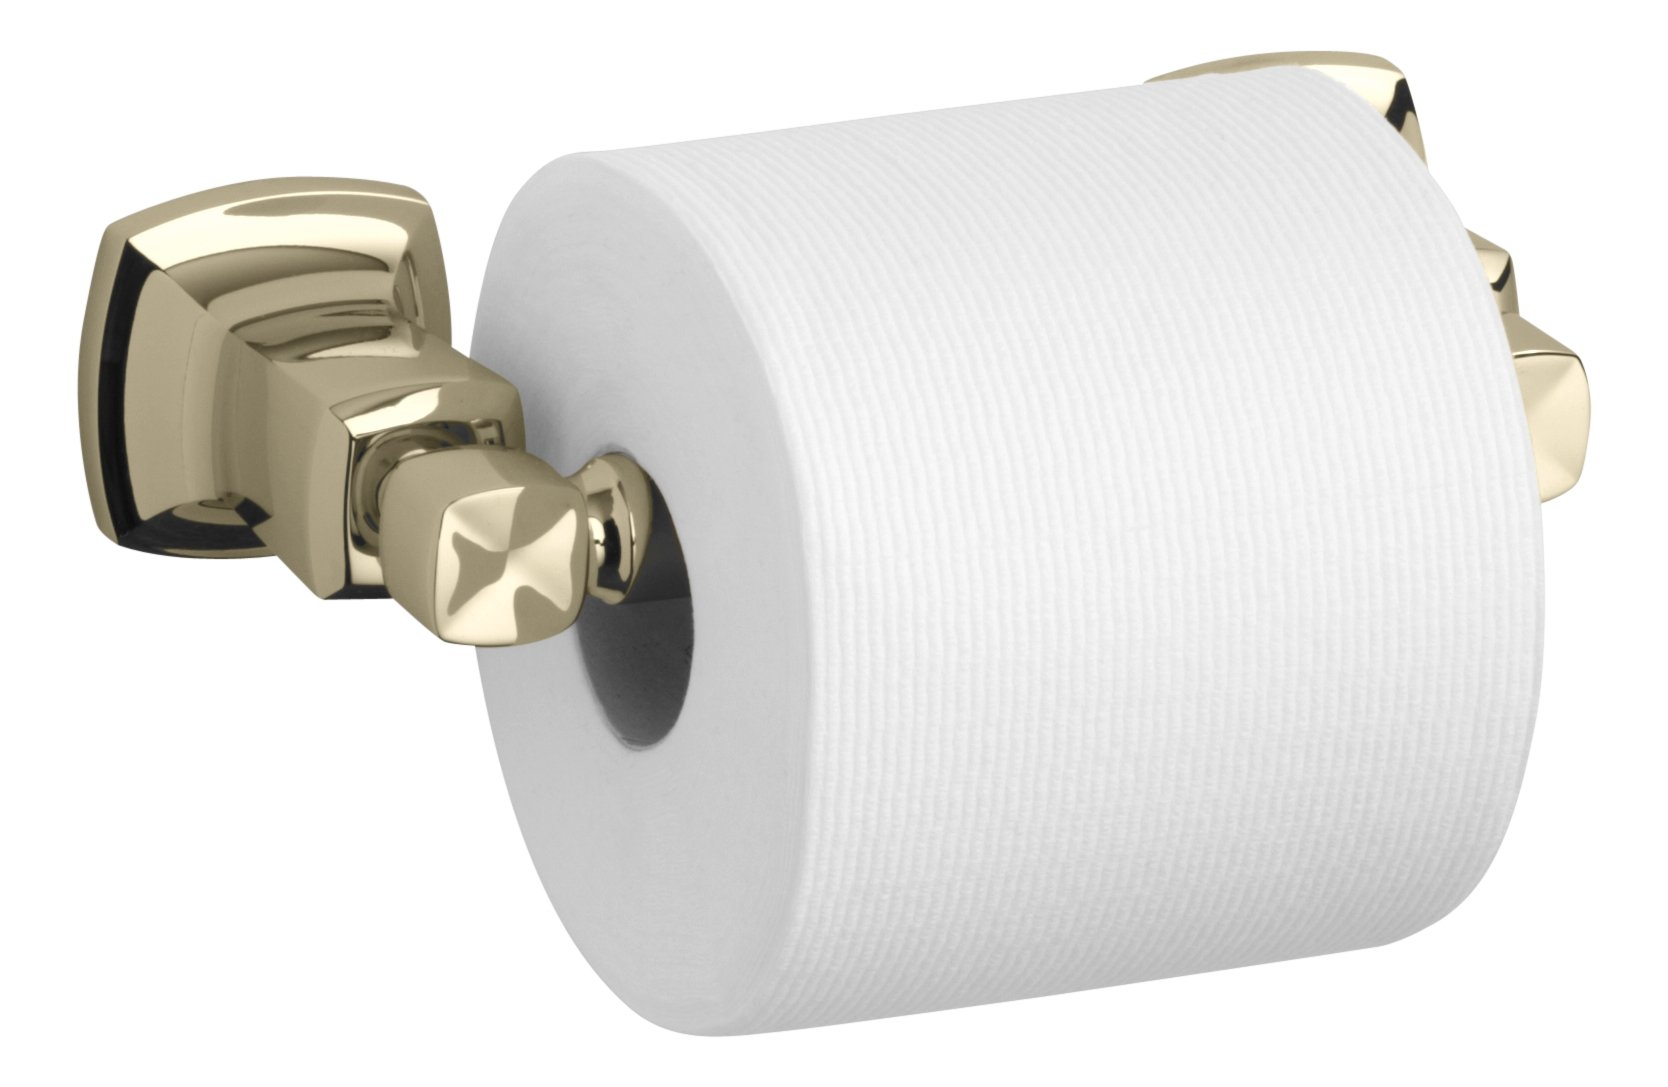 Kohler K-16265-AF Margaux Horizontal Toilet Tissue Holder, Vibrant French Gold